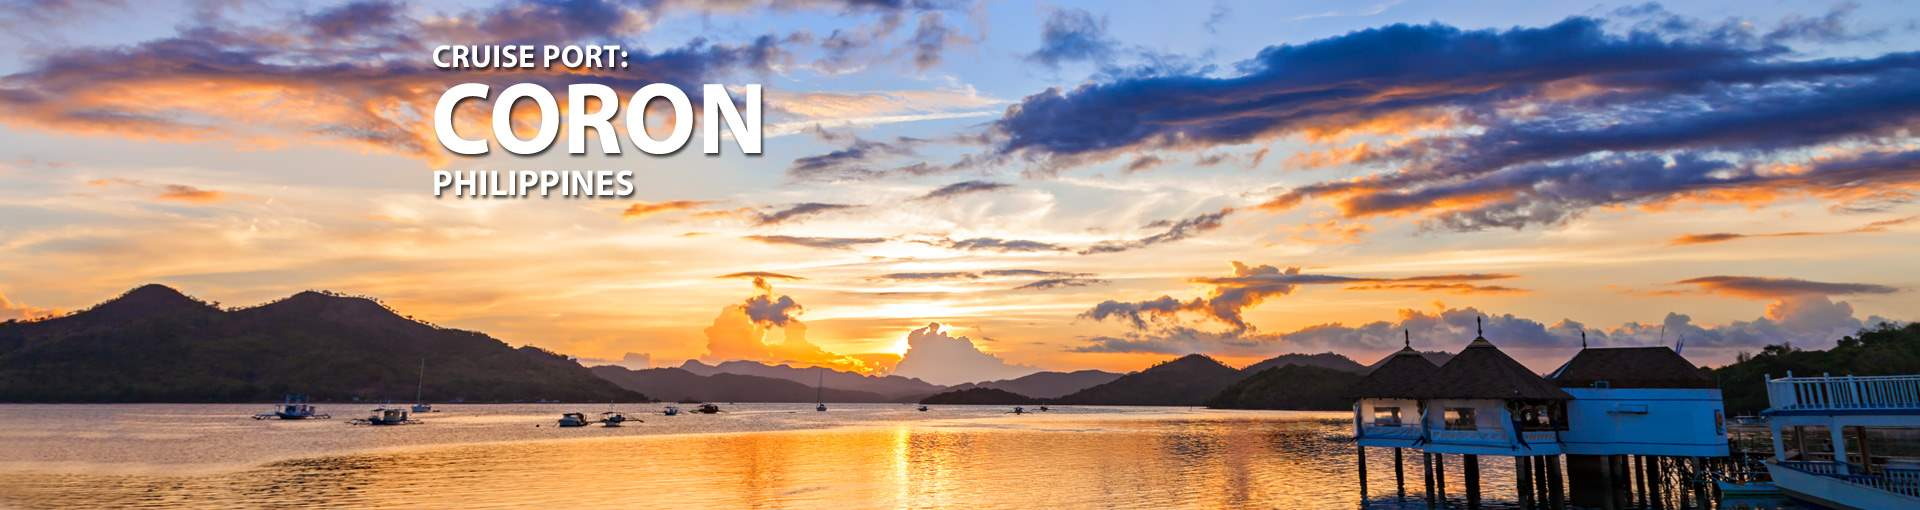 Cruises to Coron, Philippines